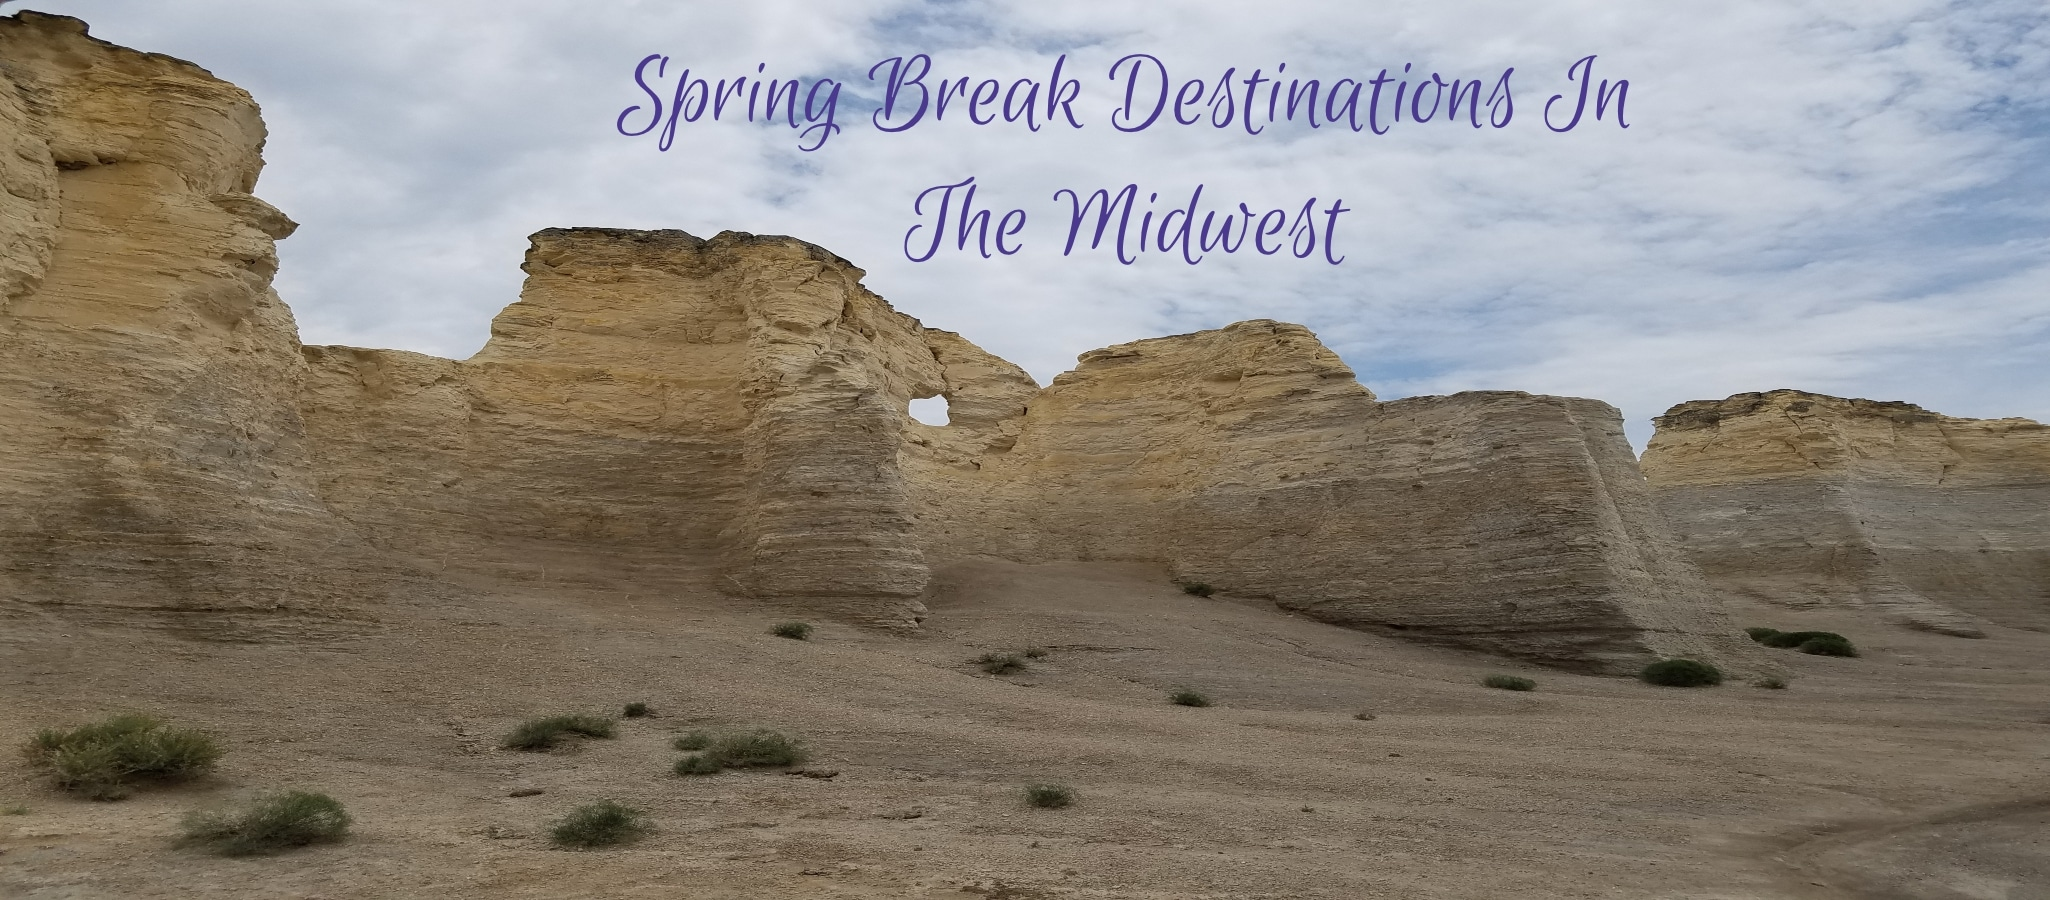 Spring Break Midwest Destinations